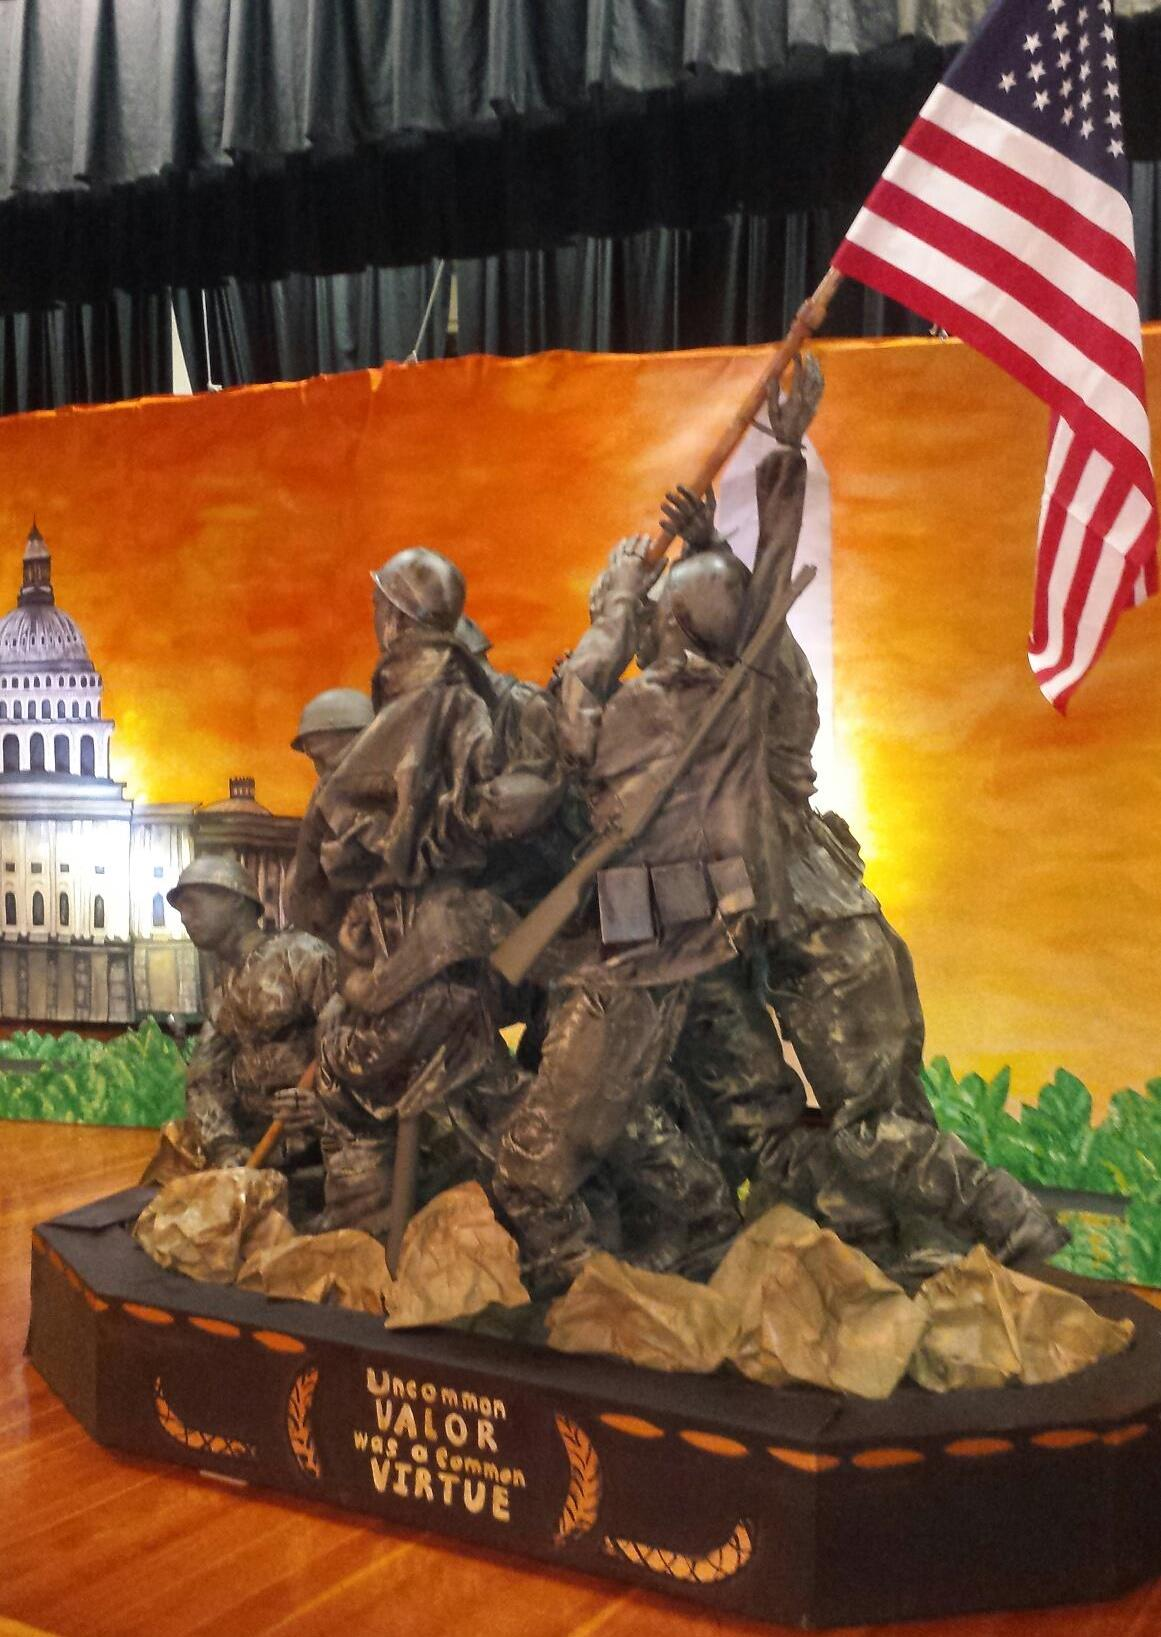 Royalton-Hartland Elementary School teacher Heather Pedini created this replica of the U.S. Marine Corps Memorial, a monument in Arlington, Va. Washington D.C. She will display it at the Barker Fire Department's annual dinner for veterans on Nov. 13, 2016. (Provided photo)